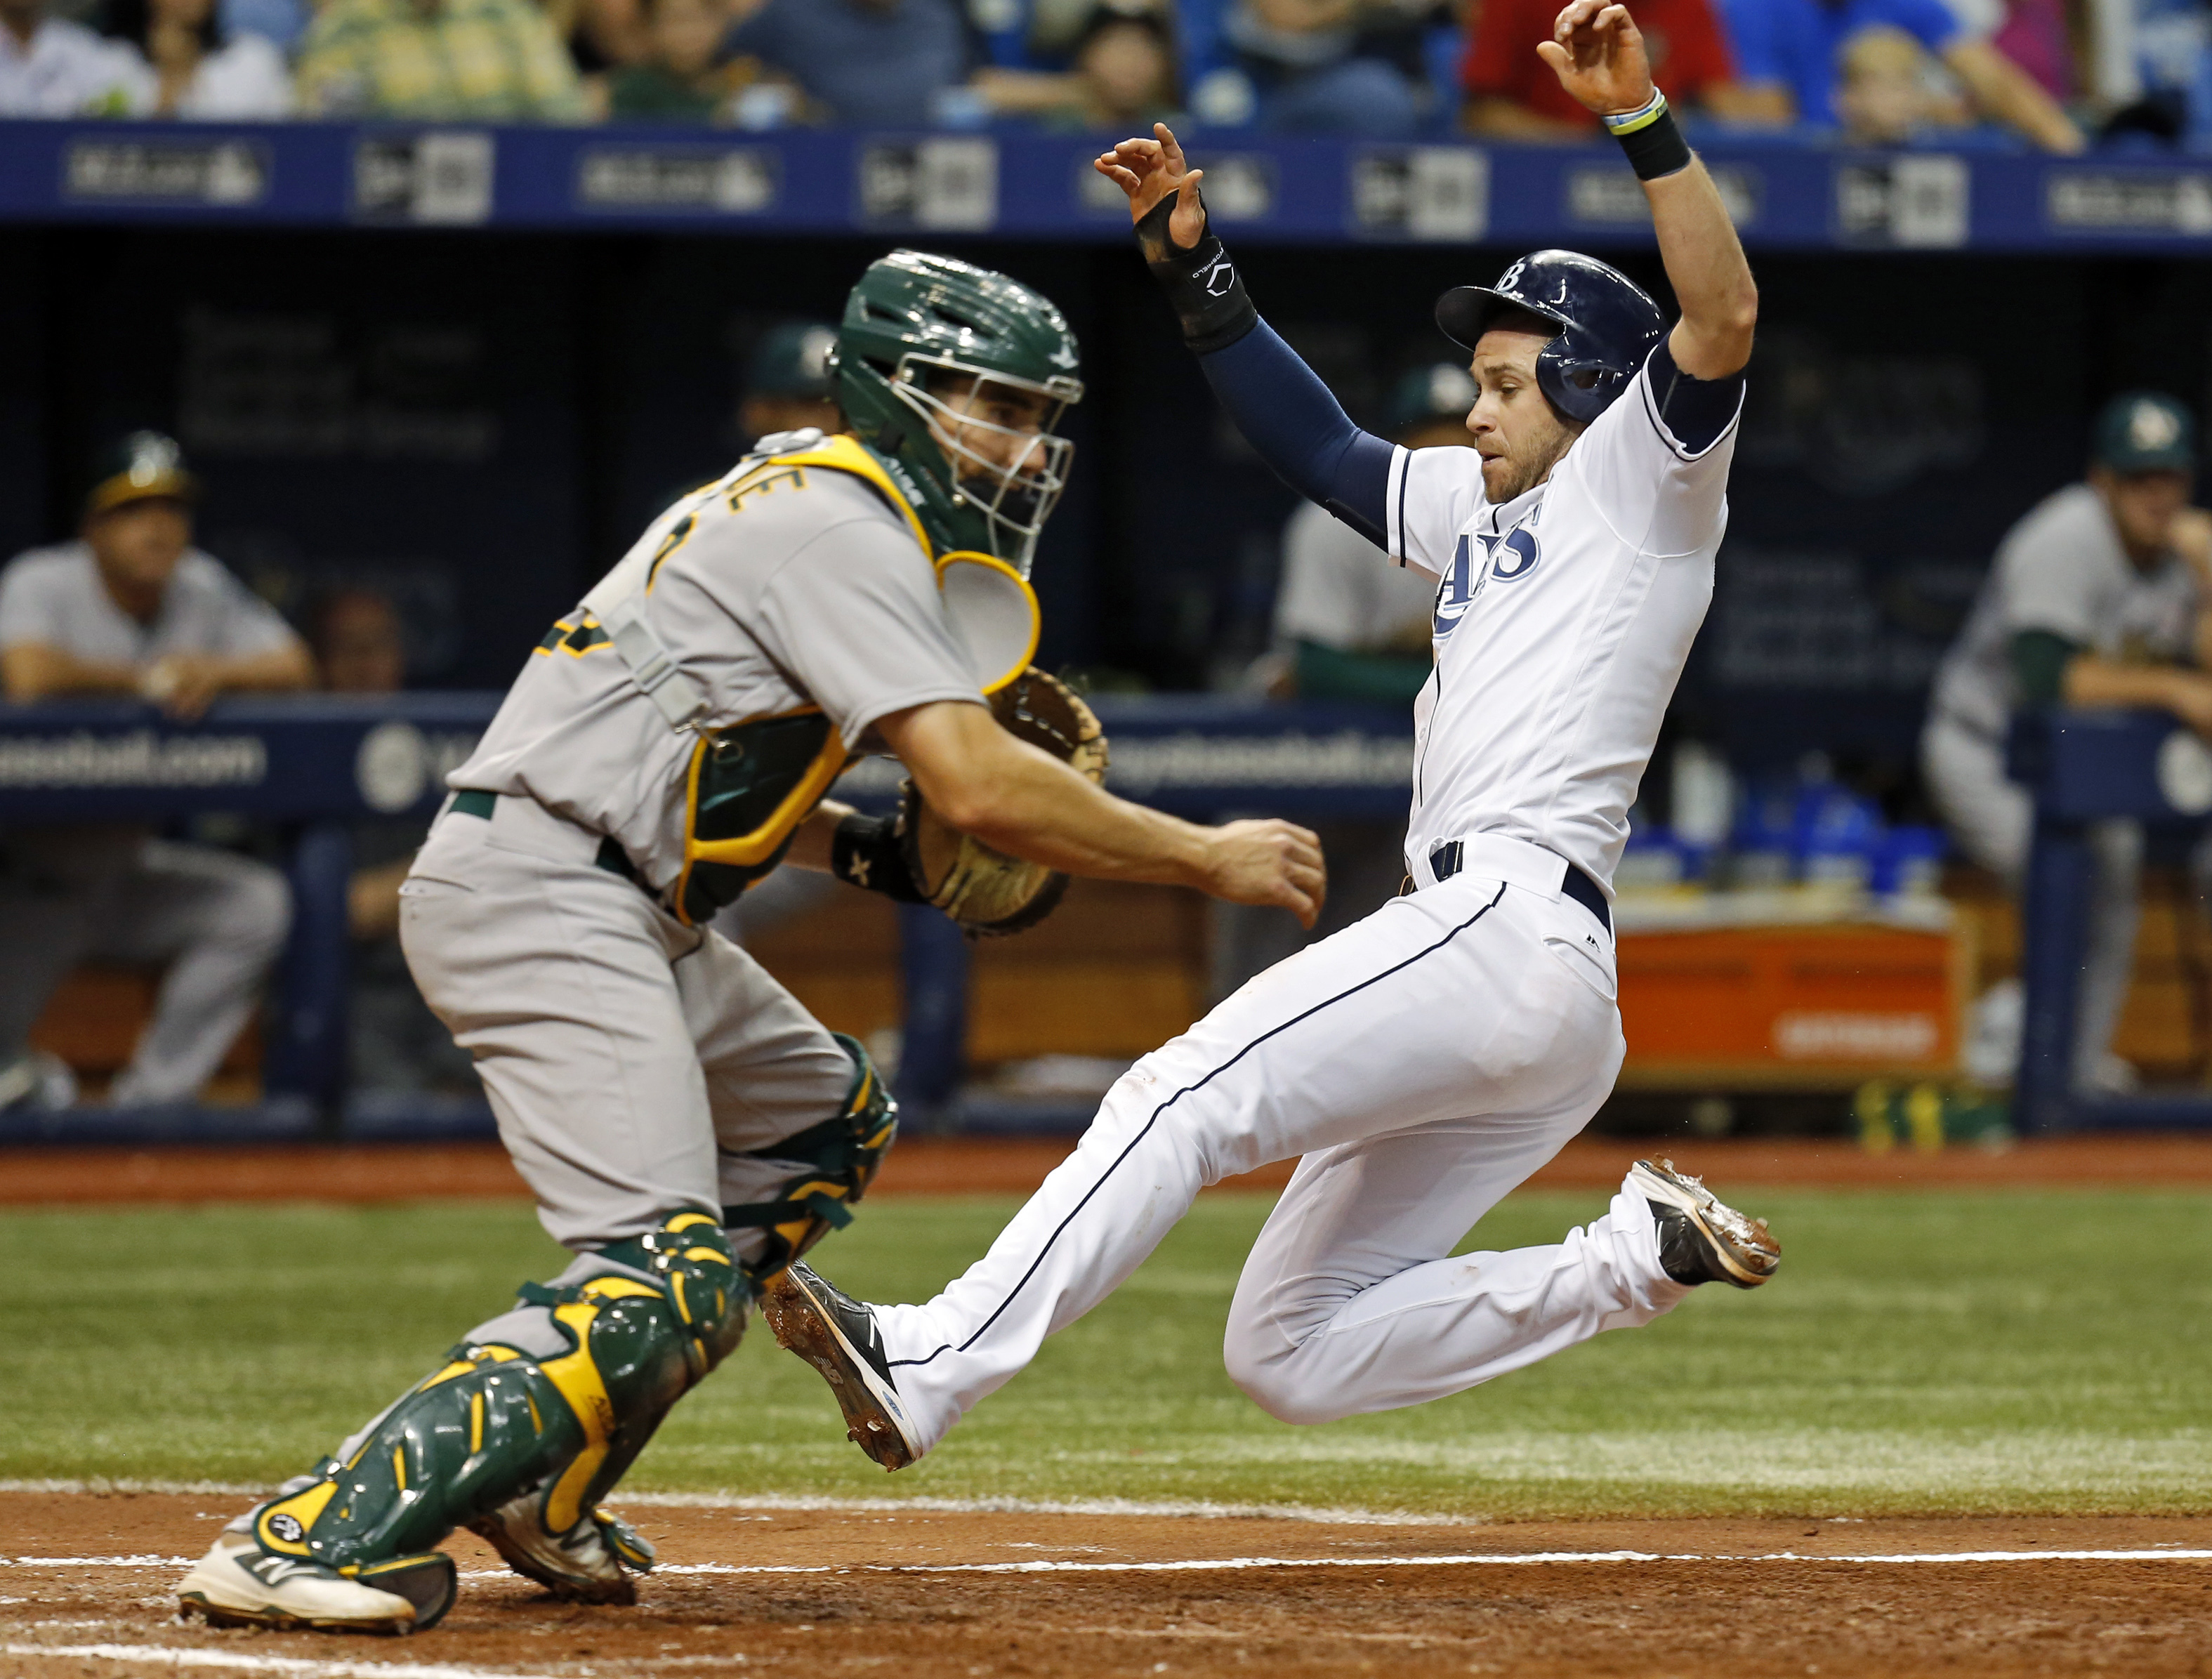 Tampa Bay Rays' Evan Longoria slides in behind Oakland Athletics catcher Matt McBride to score on a sacrifice fly during the sixth inning of a baseball game Saturday, May 14, 2016, in St. Petersburg, Fla. (AP Photo/Mike Carlson)